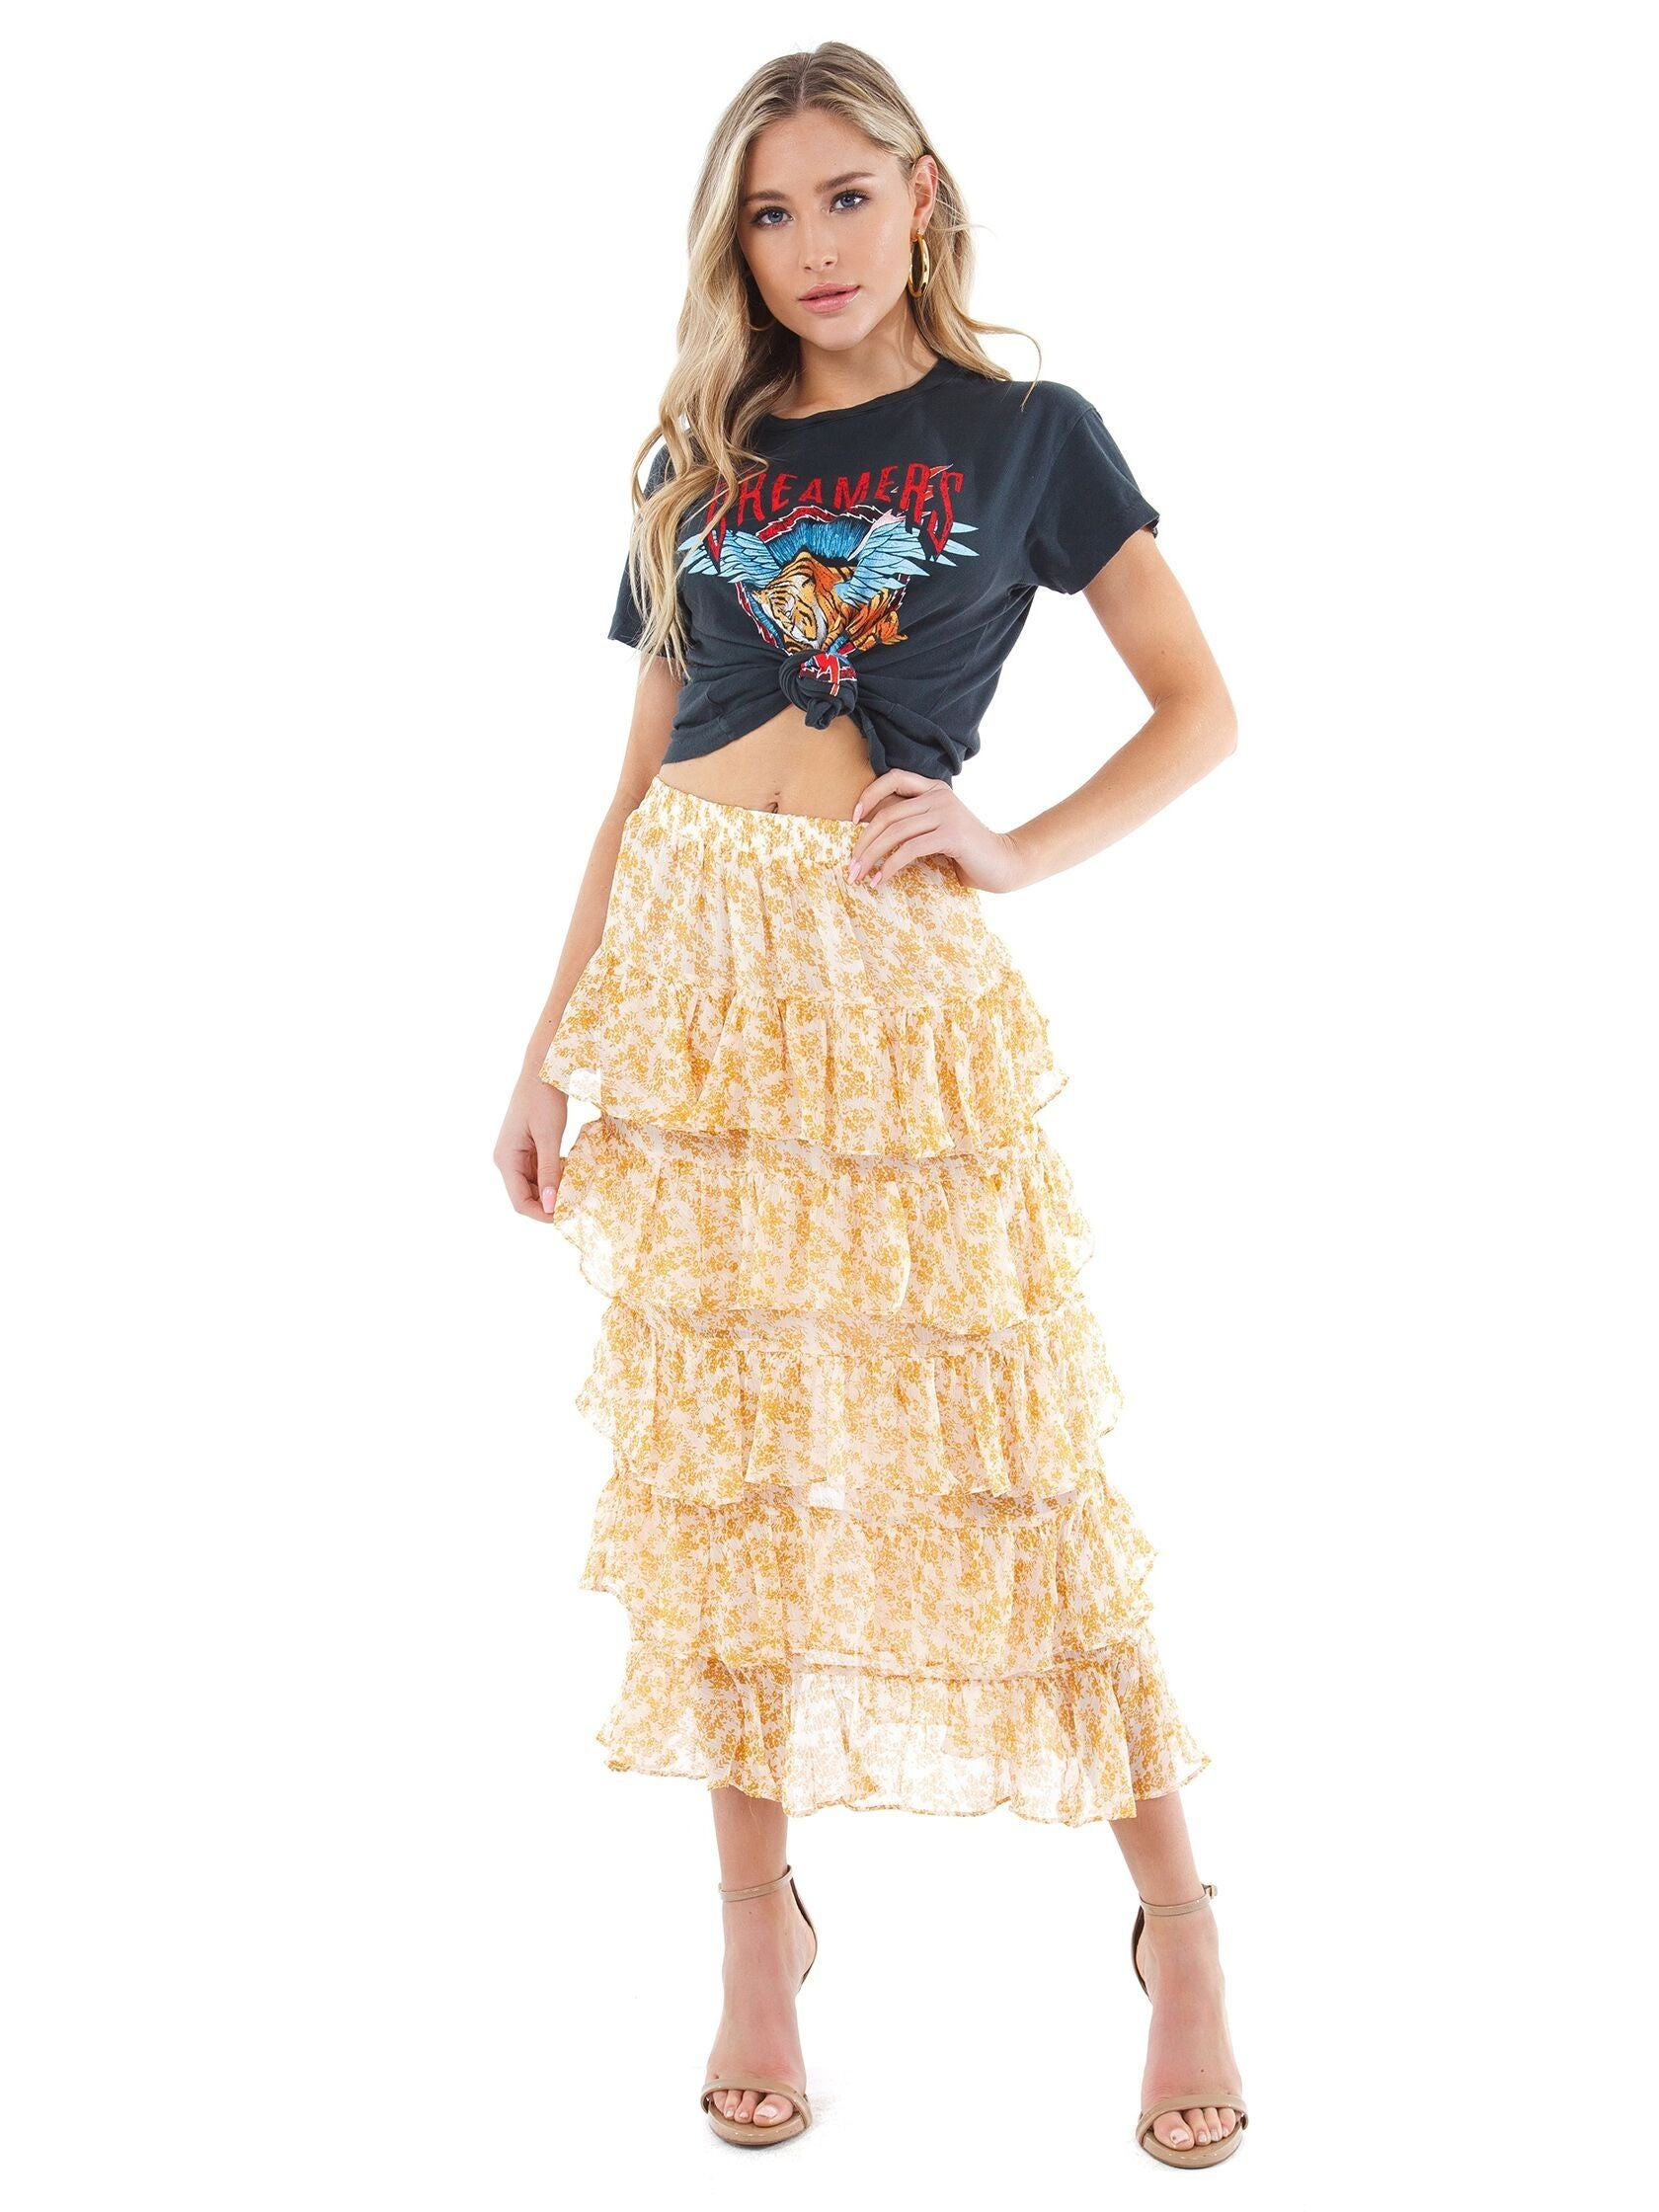 Girl wearing a skirt rental from MINKPINK called Lana Tiered Midi Skirt